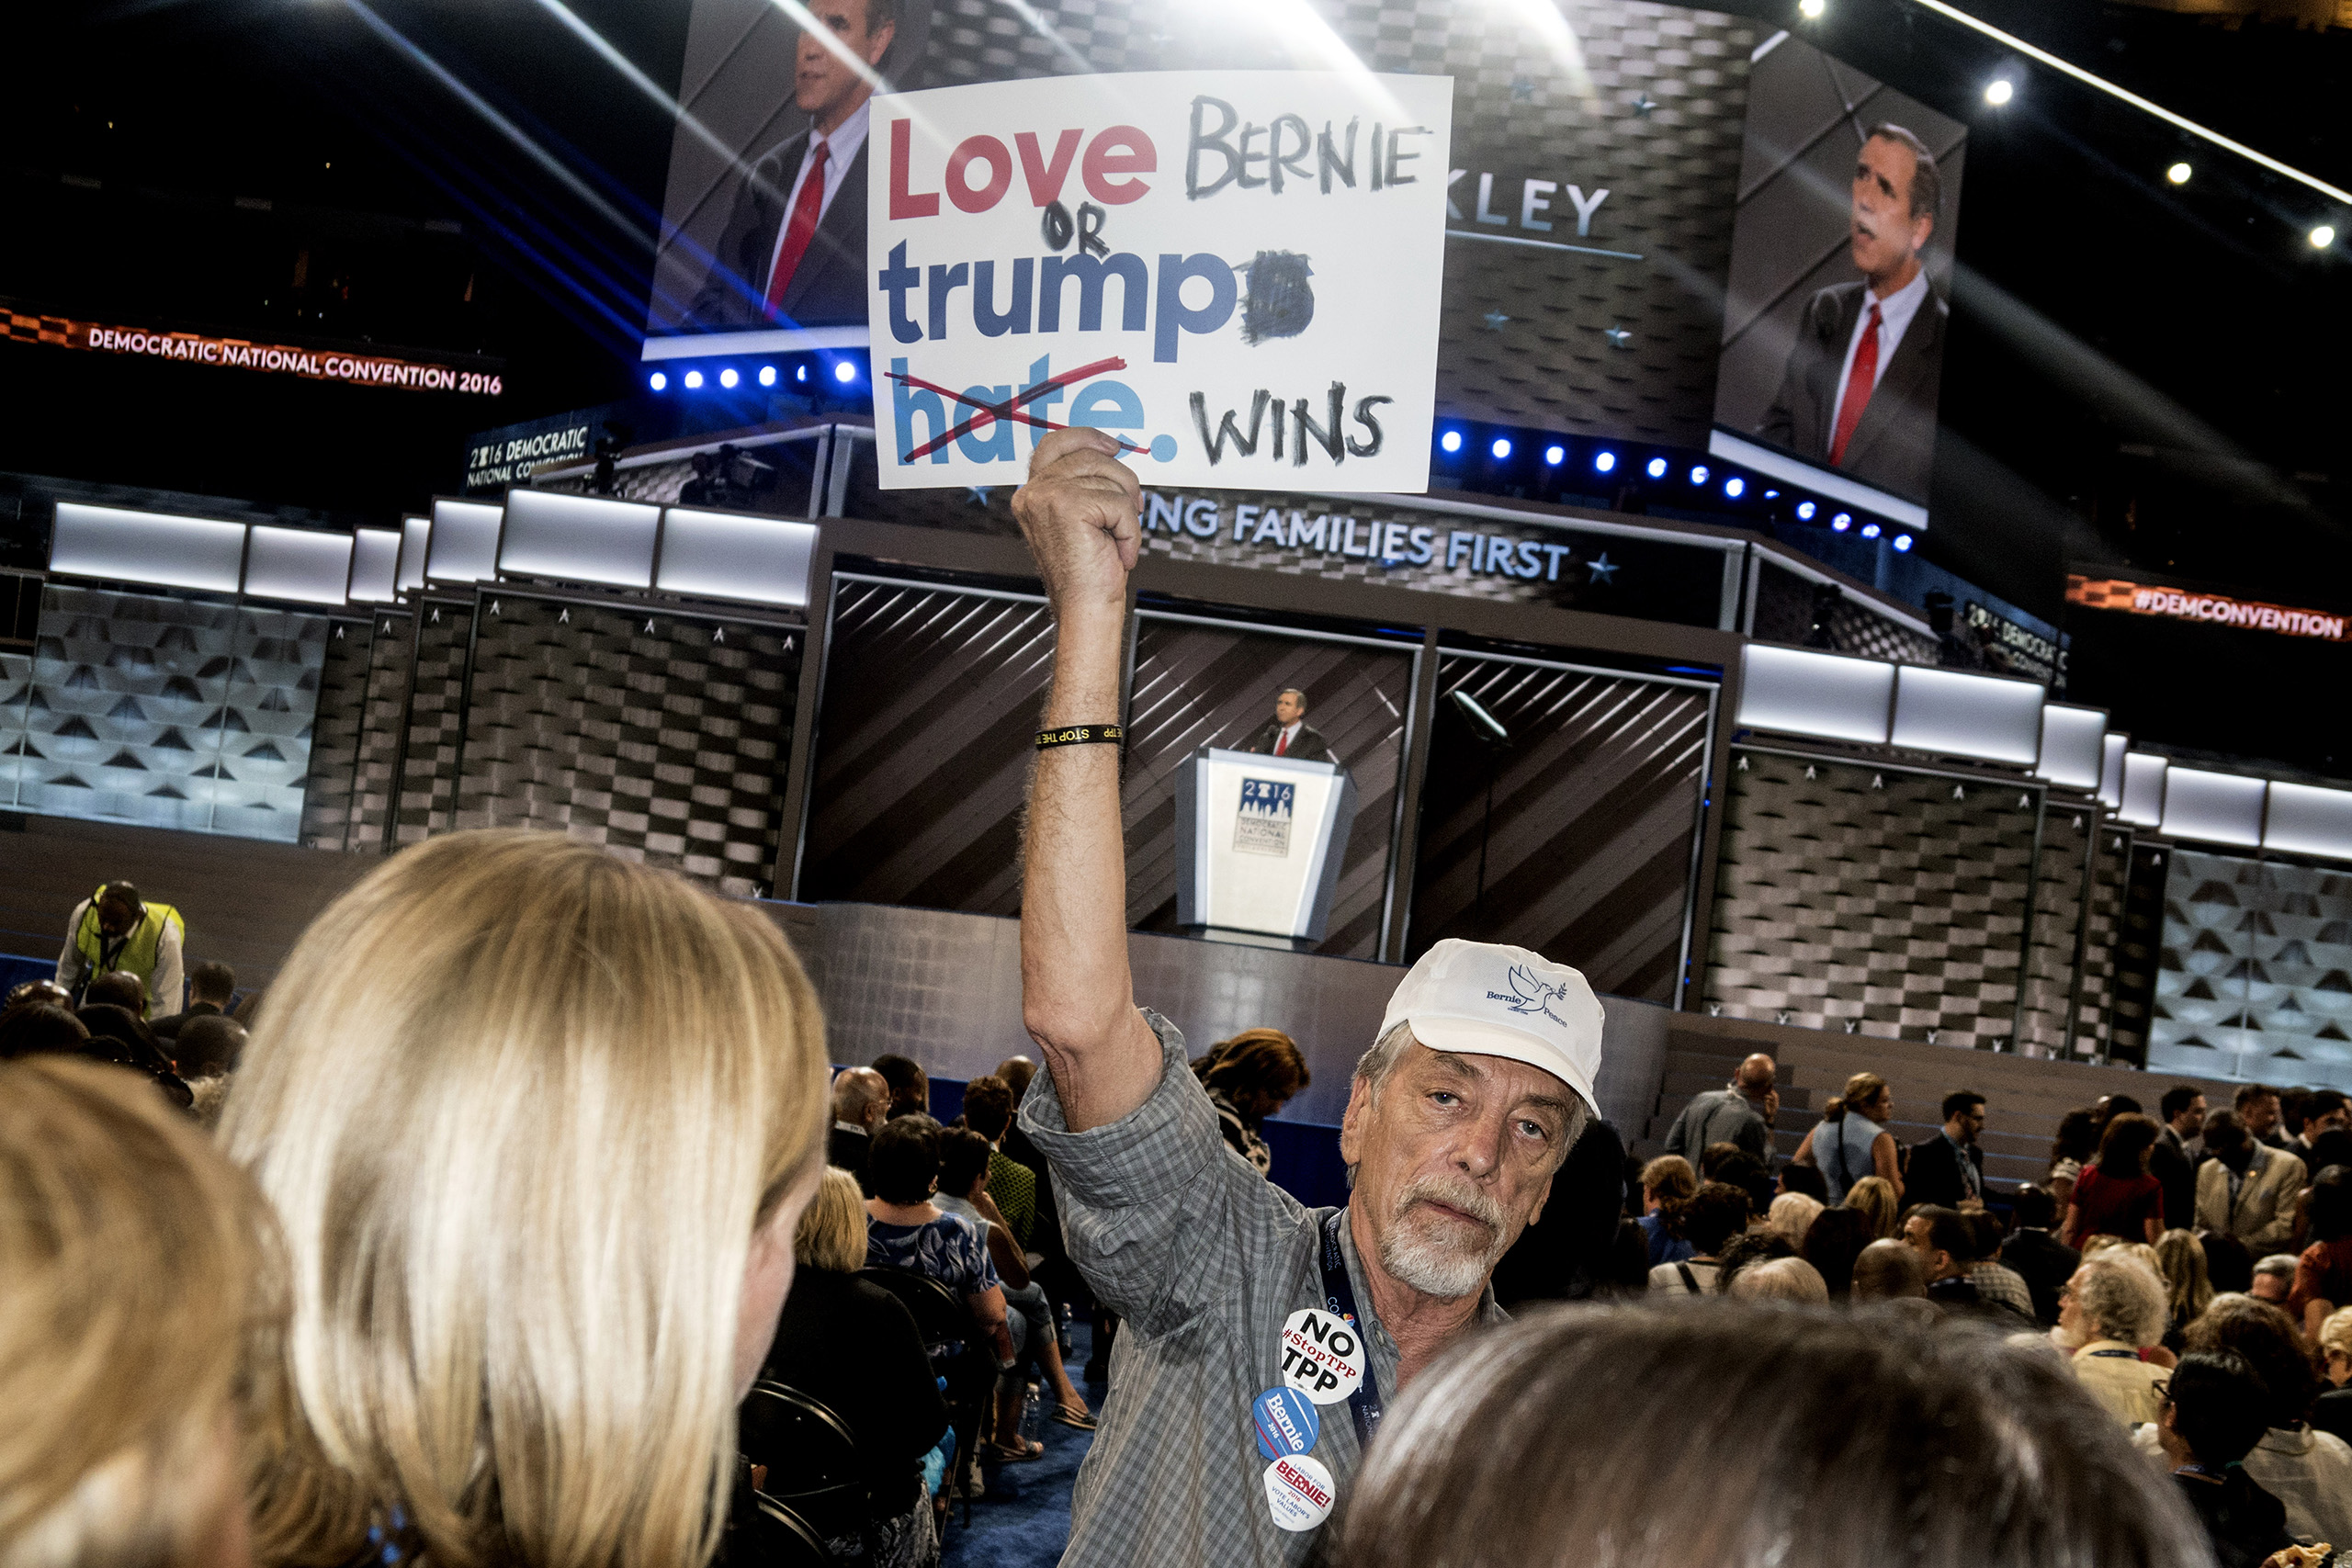 A supporter of Bernie Sanders on the first day of the Democratic National Convention at the Wells Fargo Center, July 25, 2016 in Philadelphia, Pennsylvania.